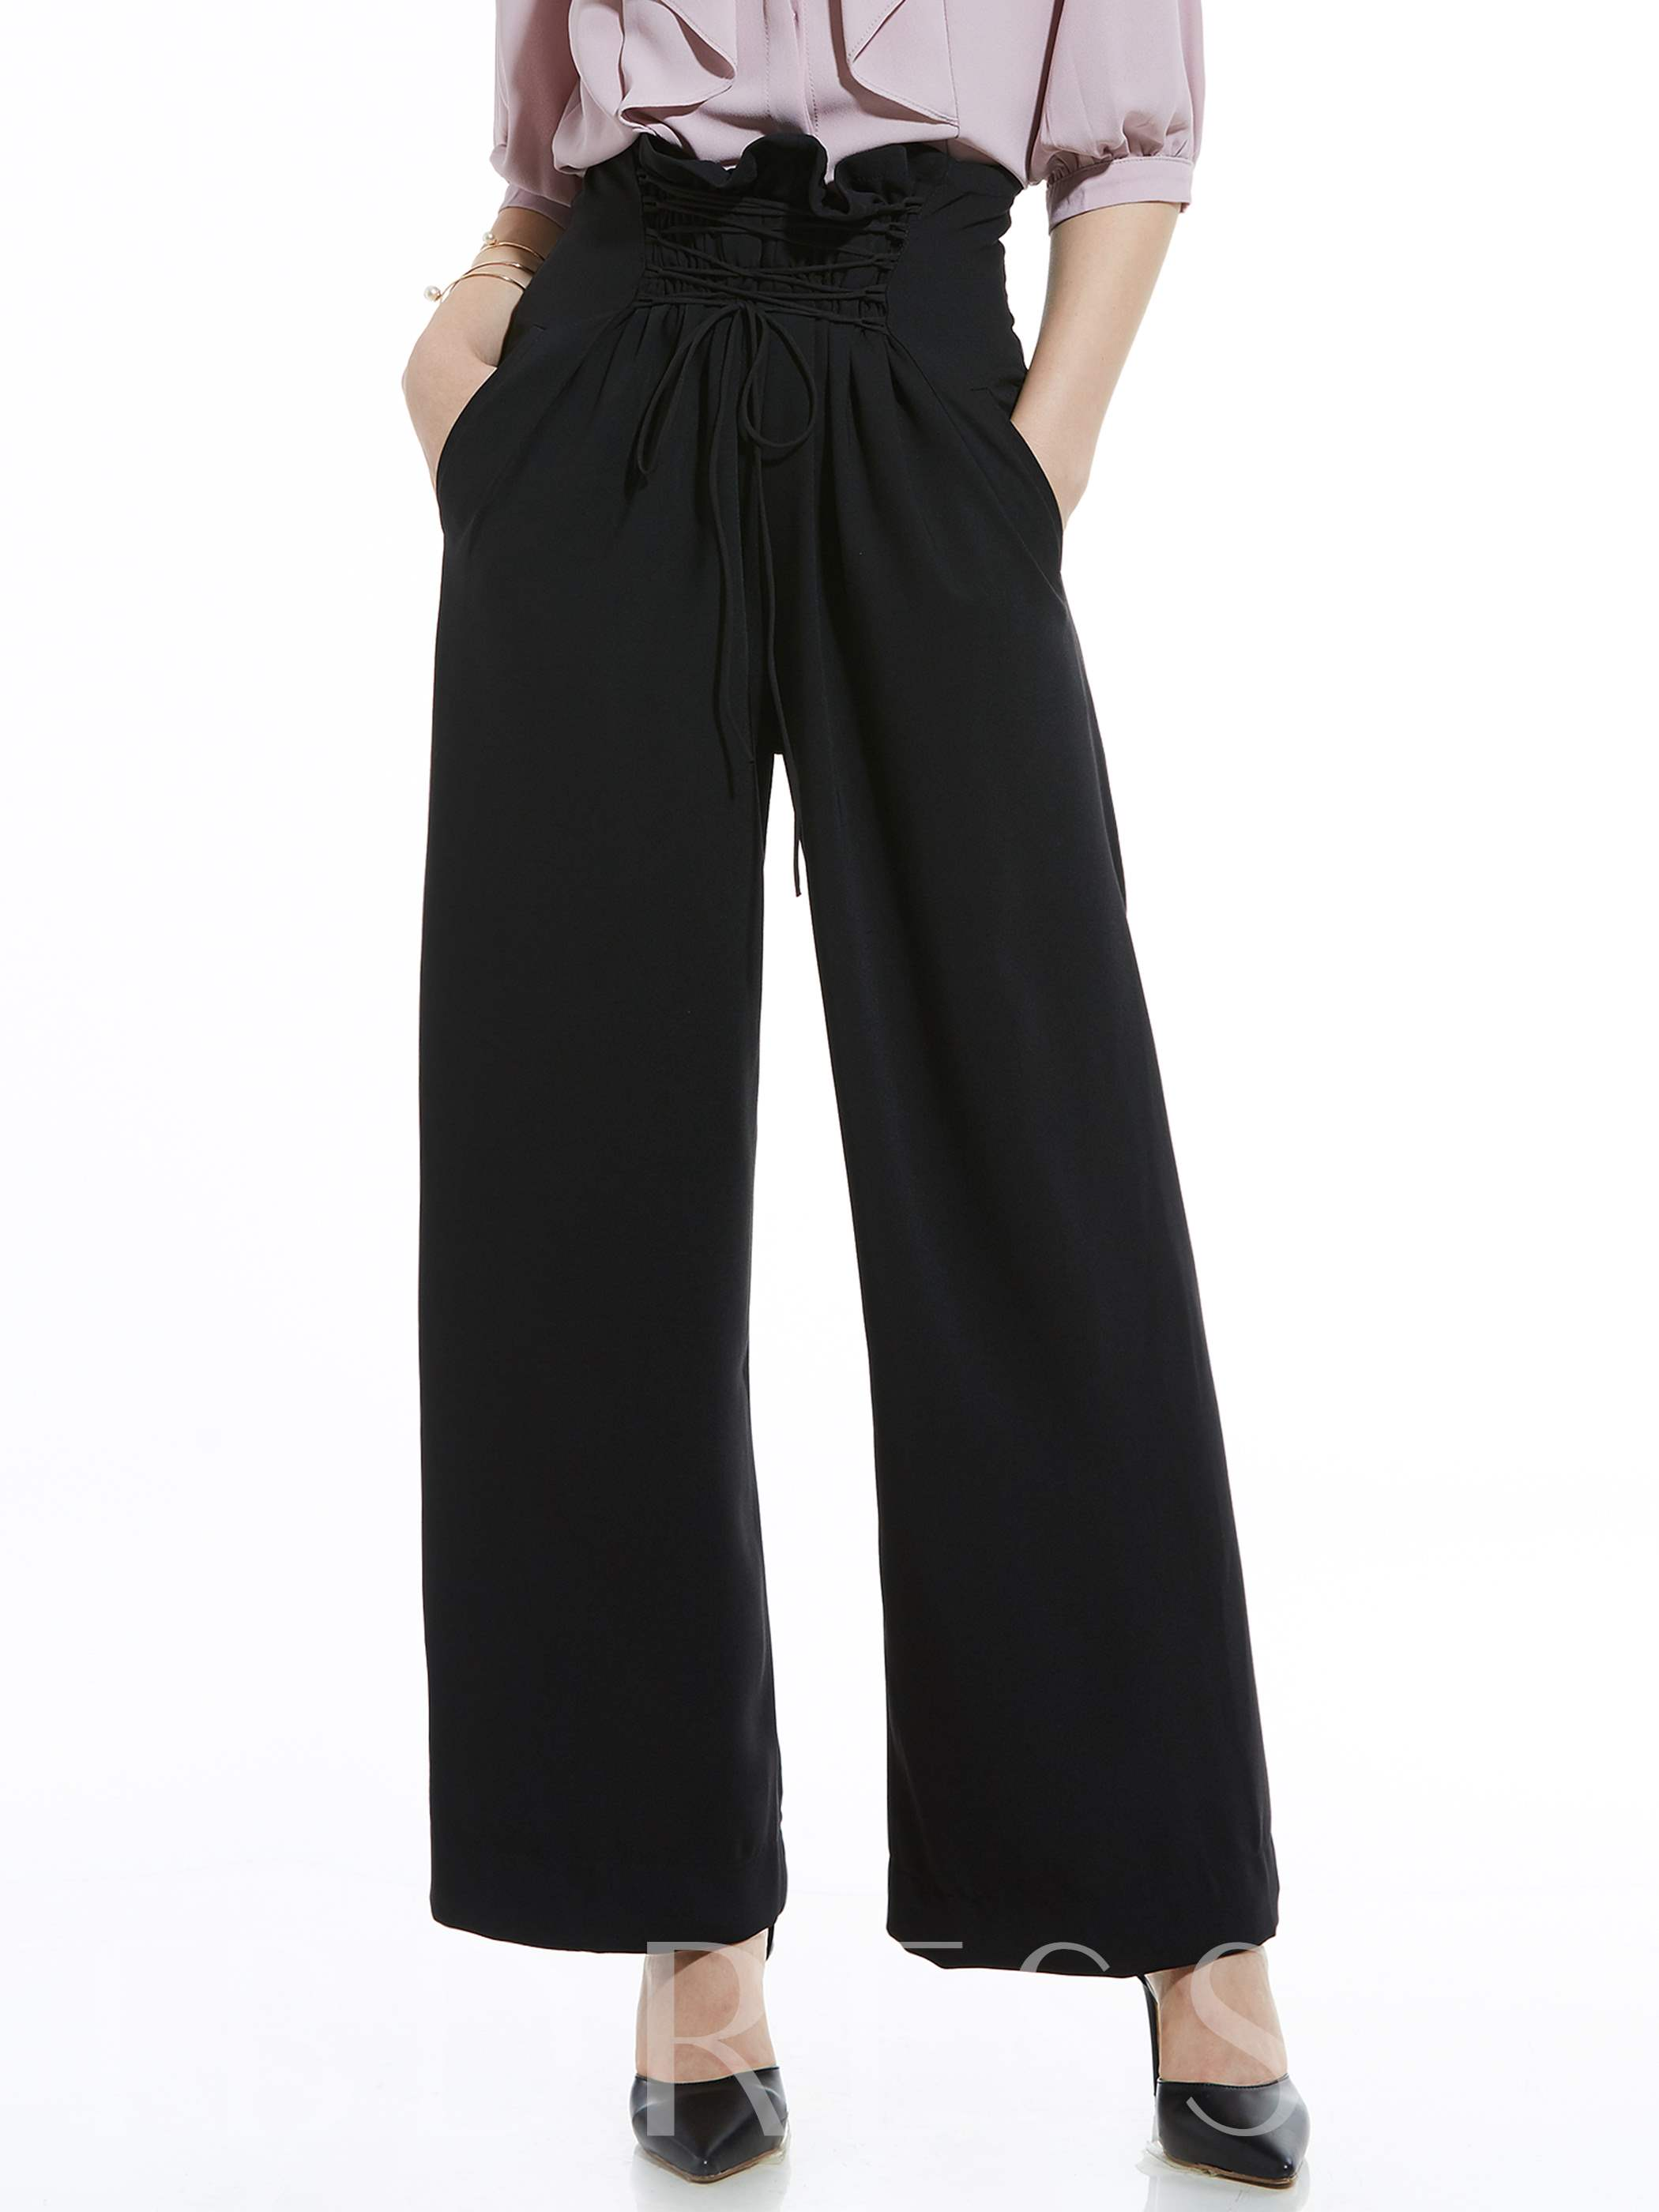 Buy High-Waist Lace-Up Wide Legs Women's Pants, 12830759 for $21.99 in TBDress store